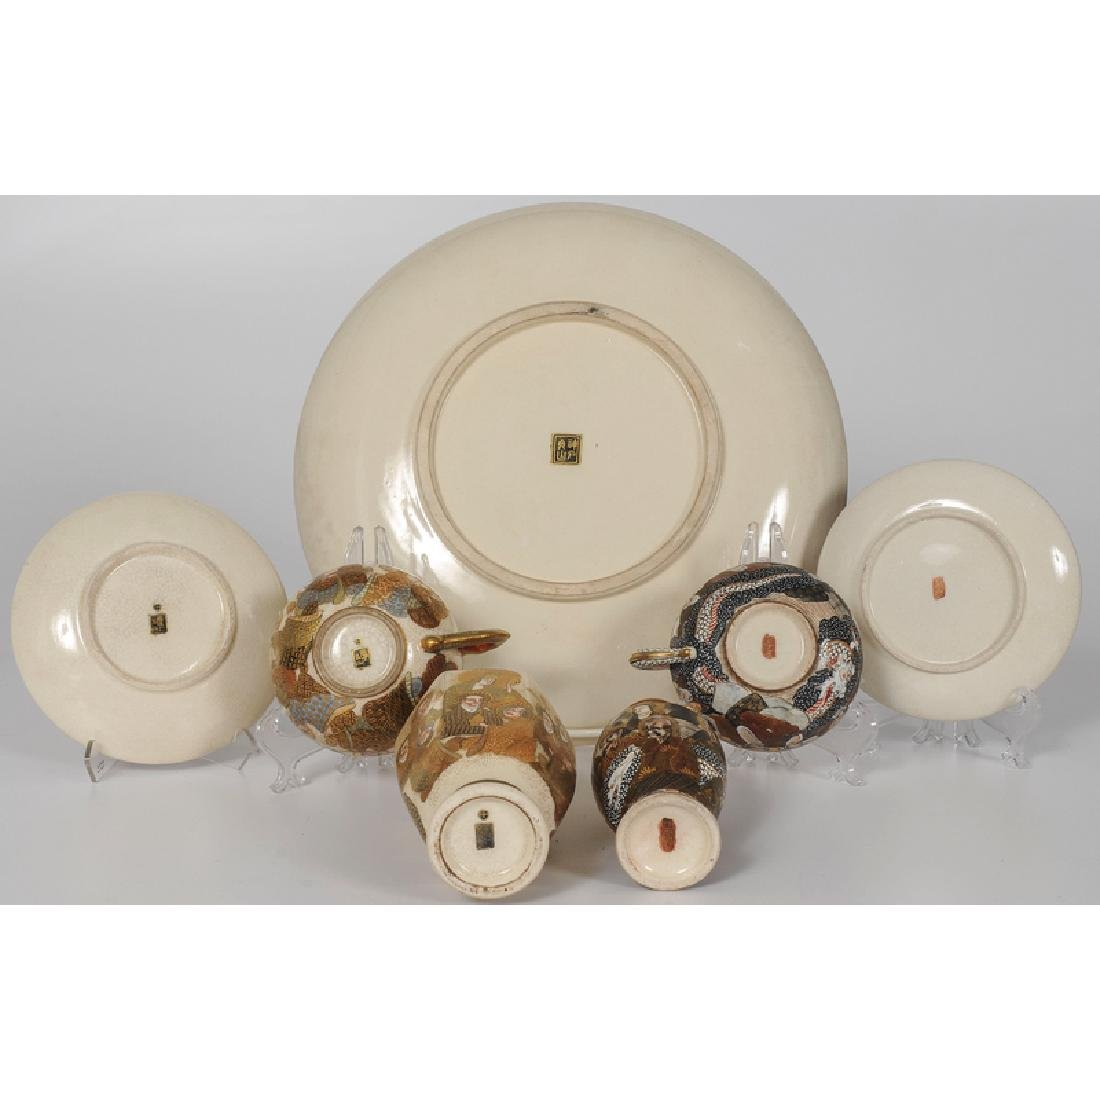 Japanese Satsuma Cups, Saucers, and Charger - 3